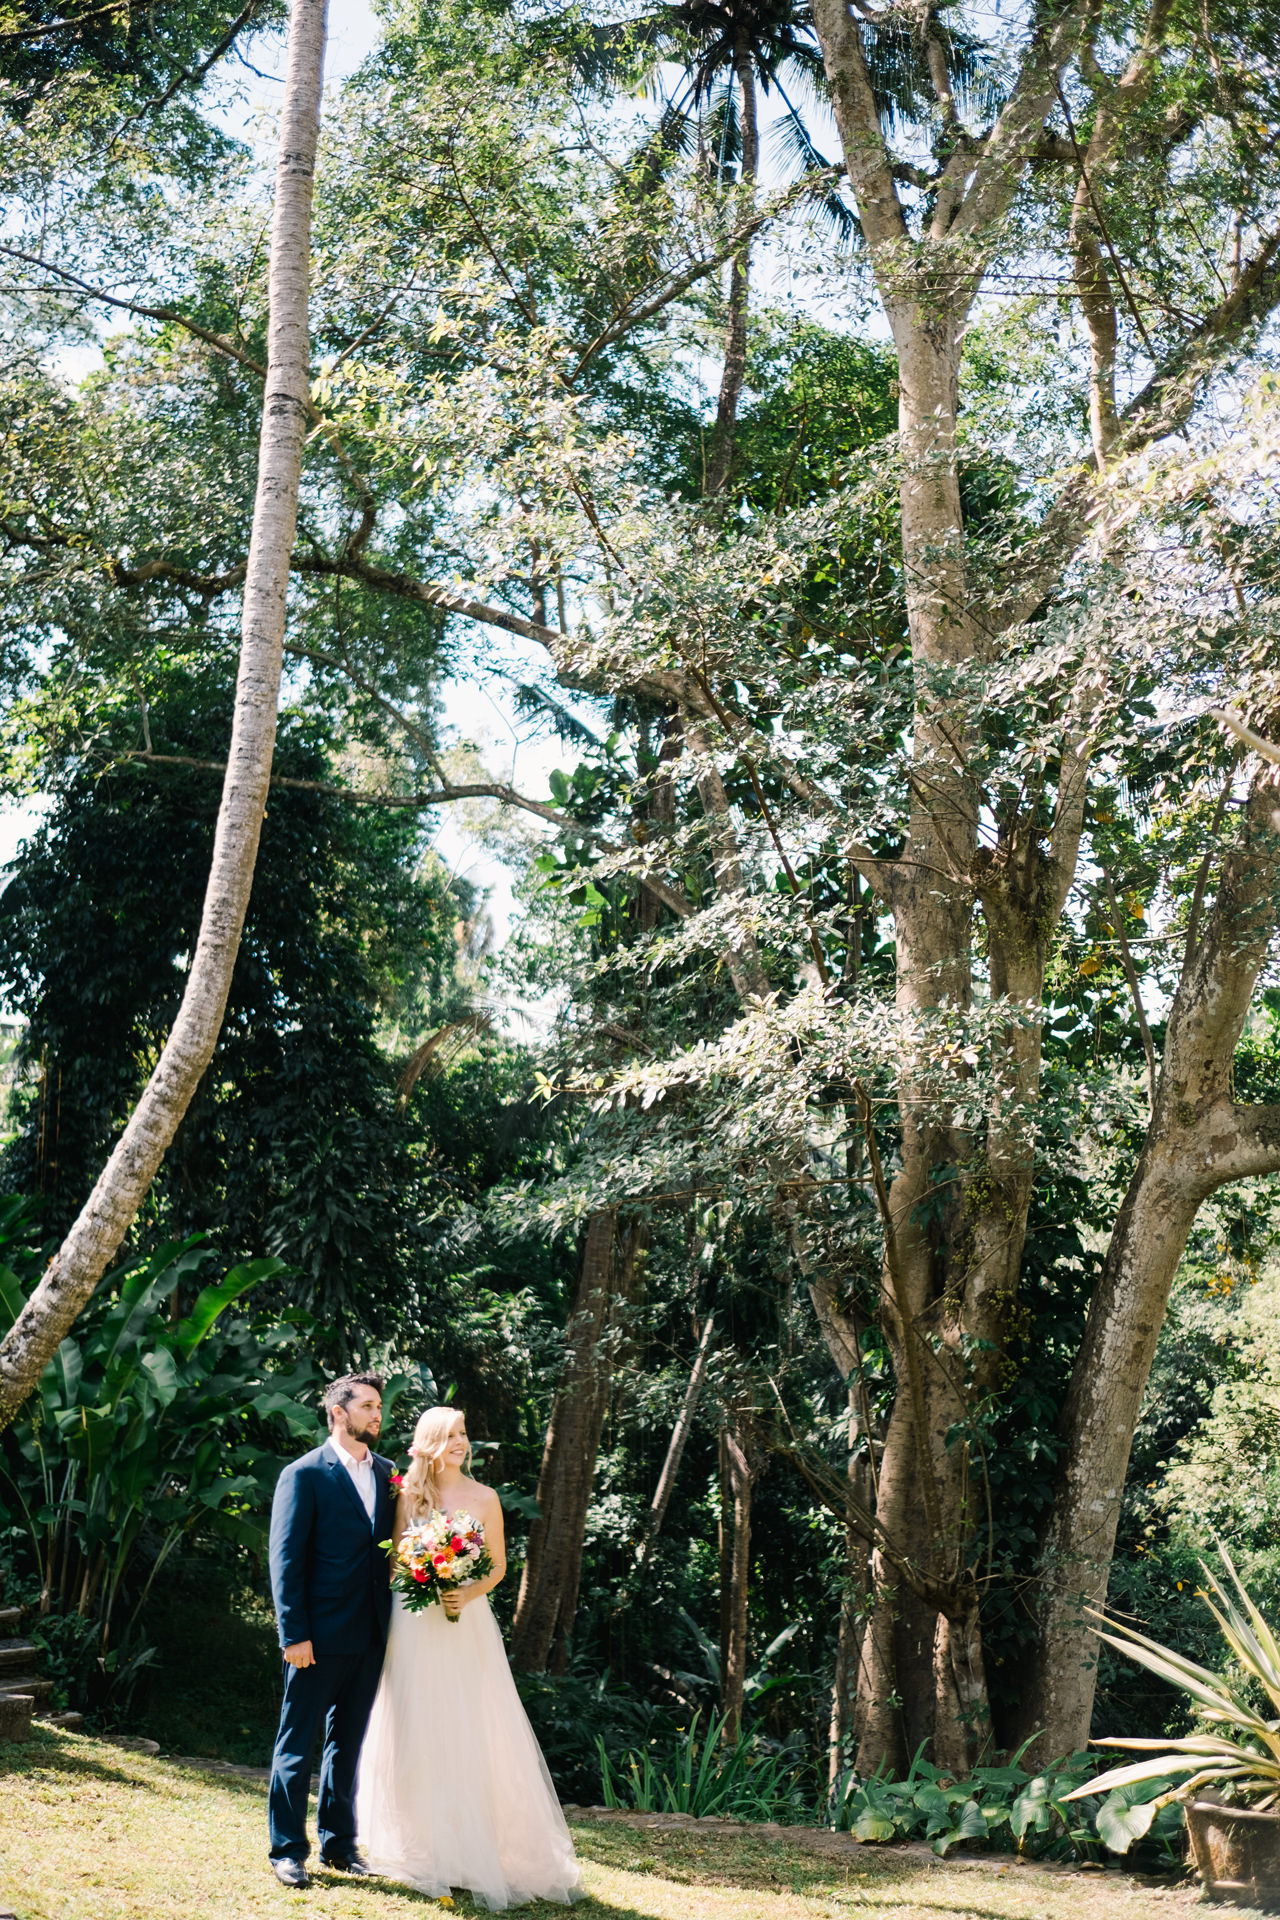 M&D: Greenery Ubud Wedding at Villa Beji Indah 12